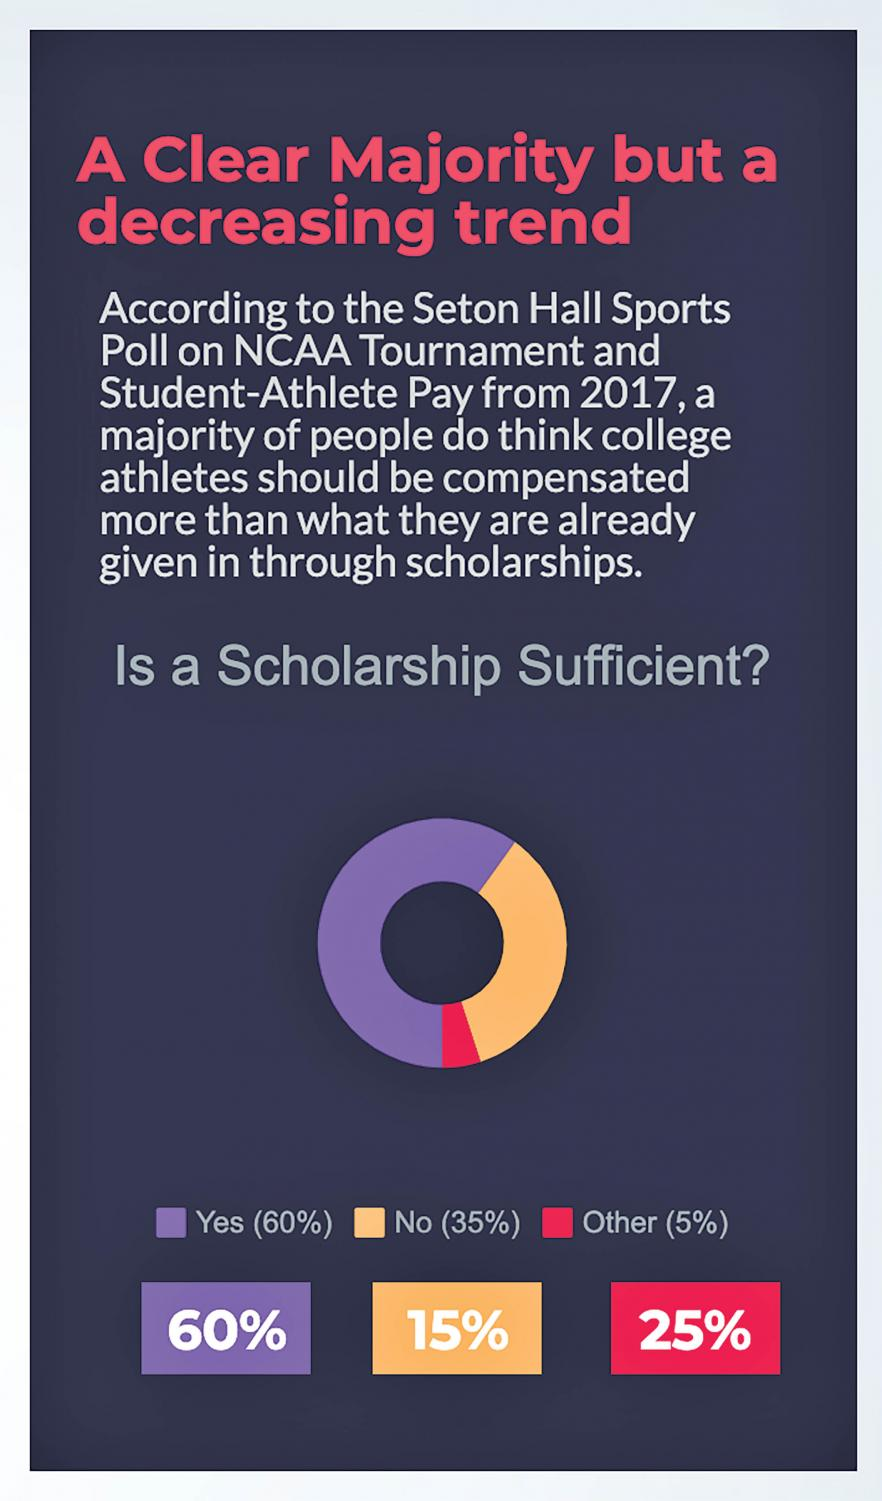 The general consensus believes that scholarships are sufficient for college athletes.